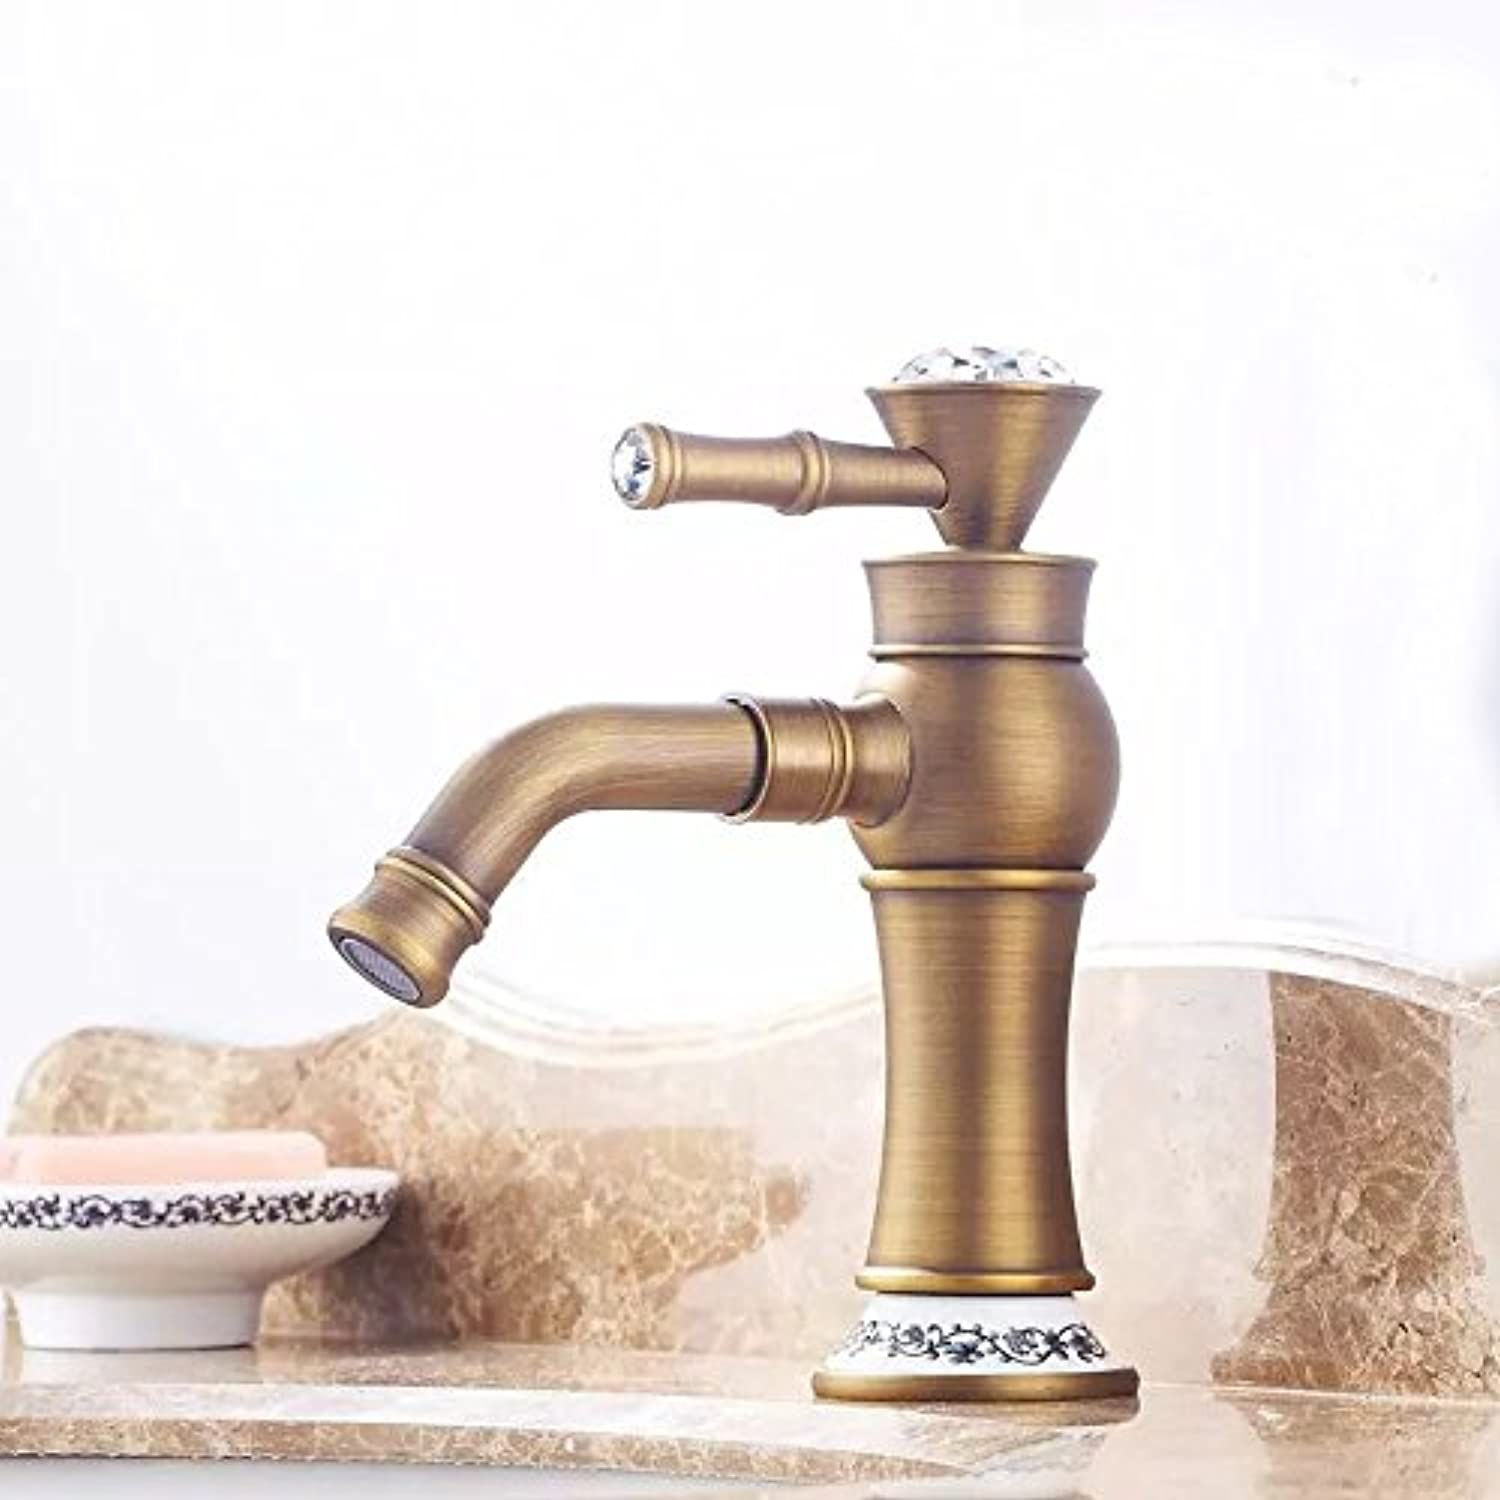 ETERNAL QUALITY Bathroom Sink Basin Tap Brass Mixer Tap Washroom Mixer Faucet Hot and cold basin gold kitchen faucet hot and cold basin A antique ceramic low Kitchen Sin